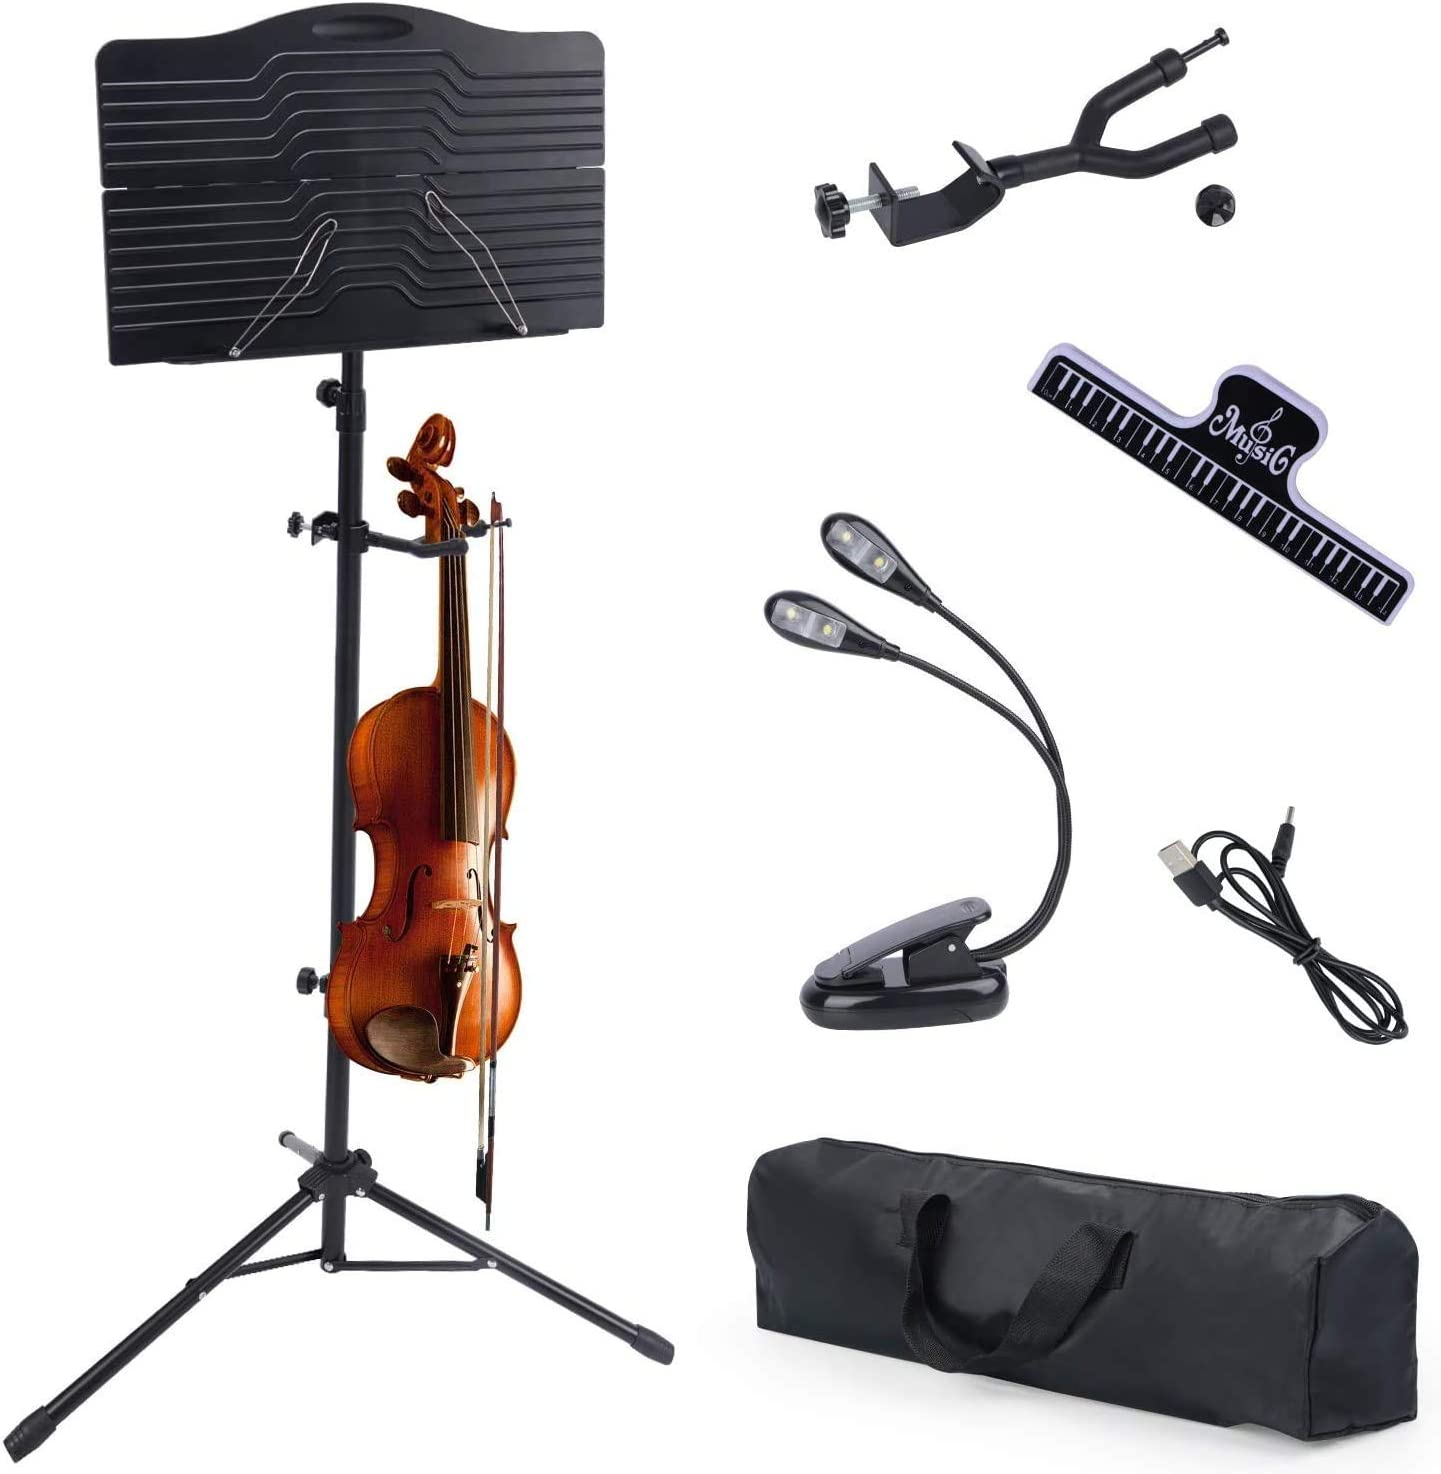 Max 77% OFF Over item handling Klvied Sheet Music Stand with Violin Portable Folding Hanger vi